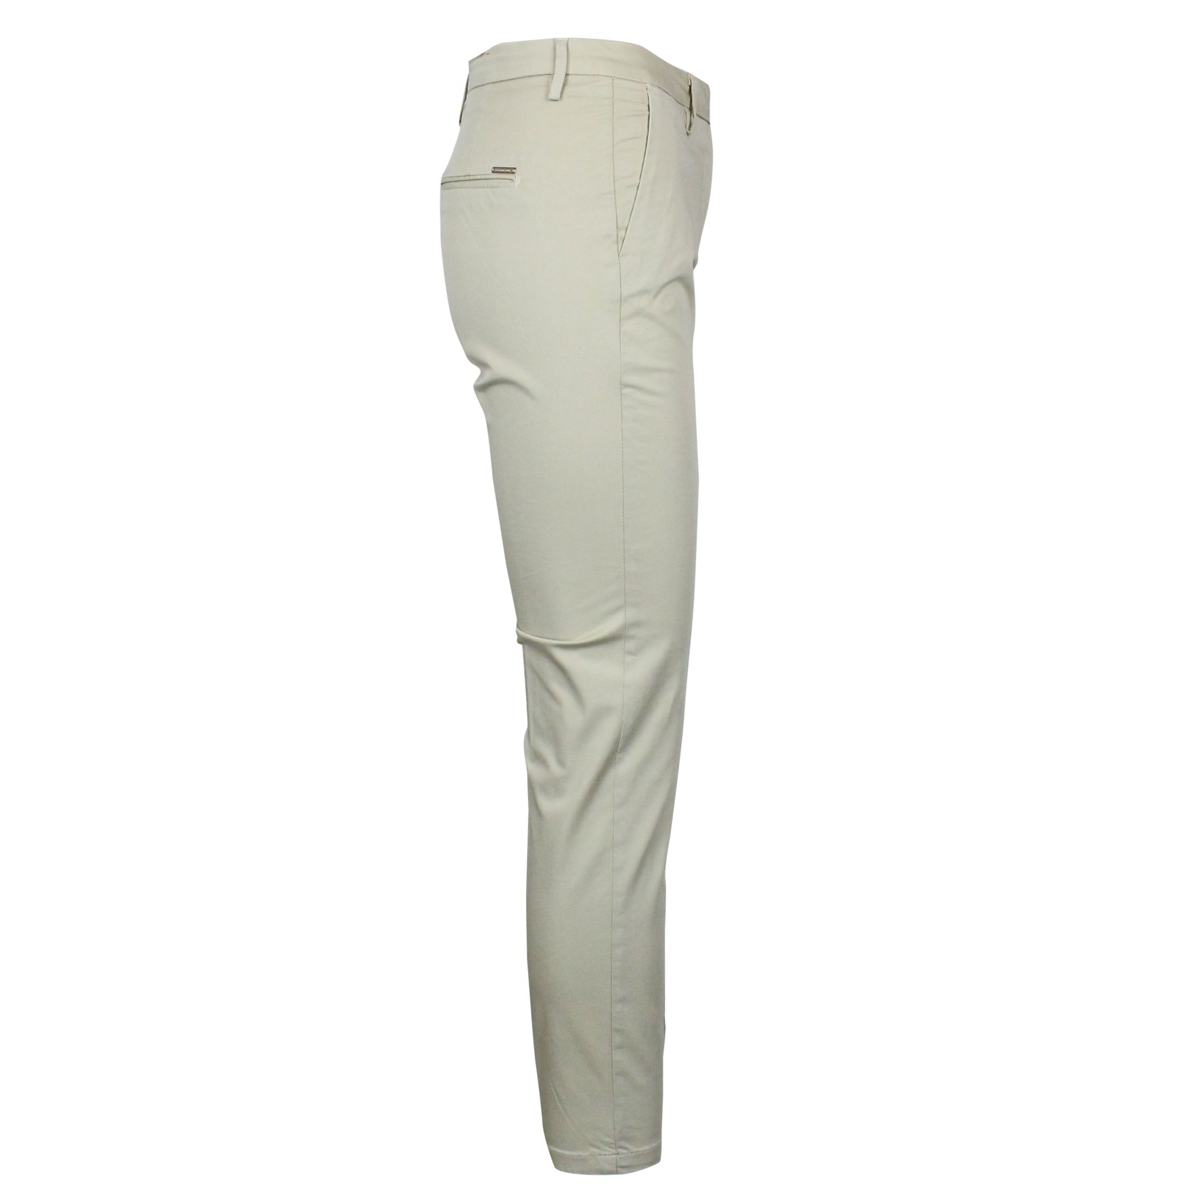 Cotton trousers with america pockets Beige MICHAEL COAL